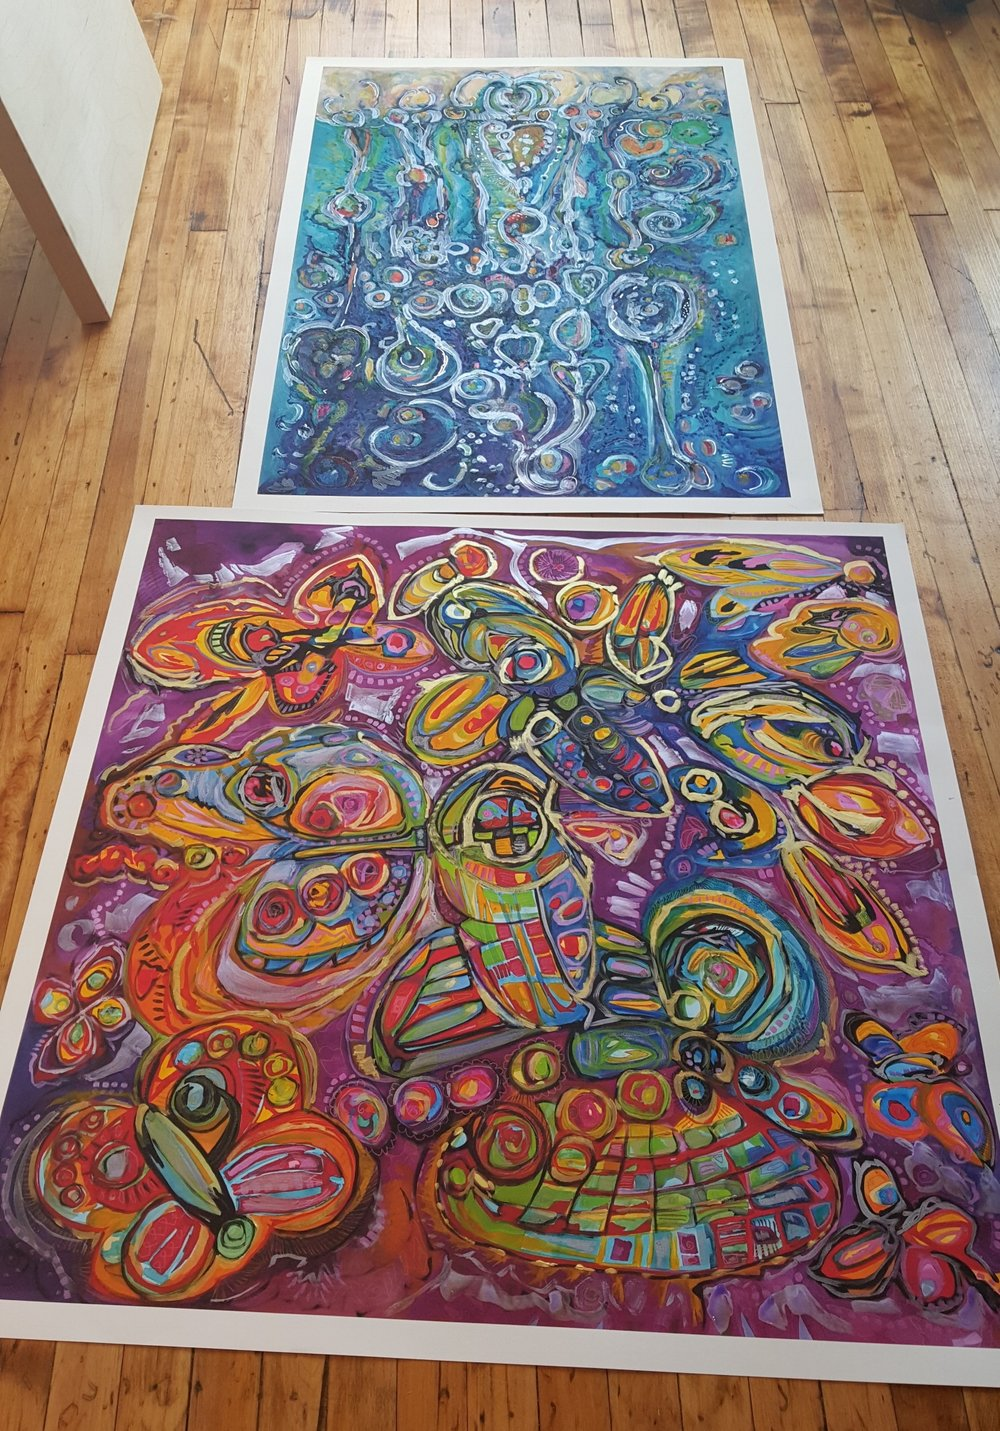 Hot off the Press, Giclée prints